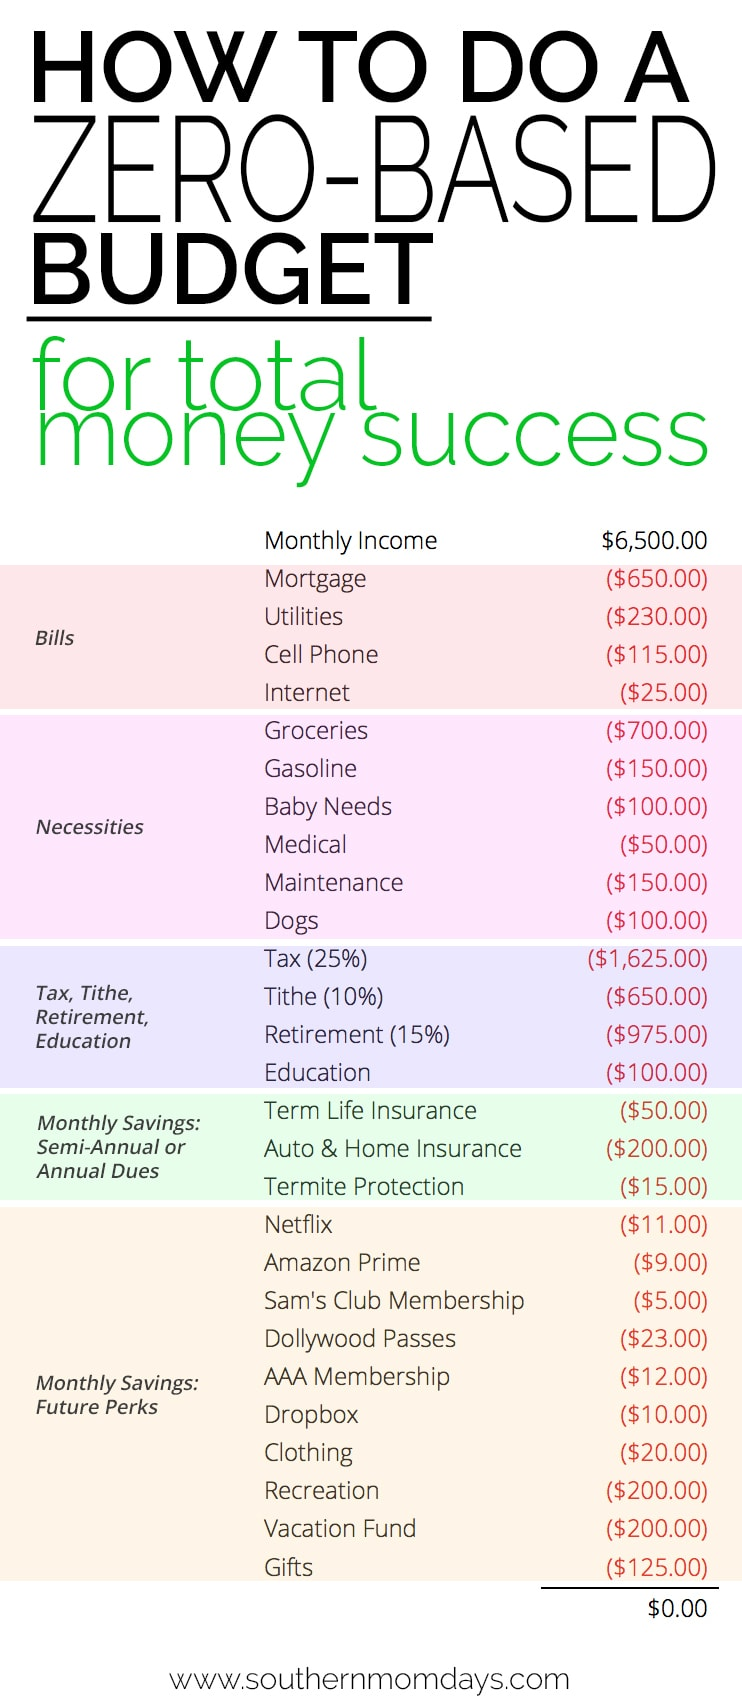 Zero-based budget example including how to do one and why, featured on the Southern Momdays blog